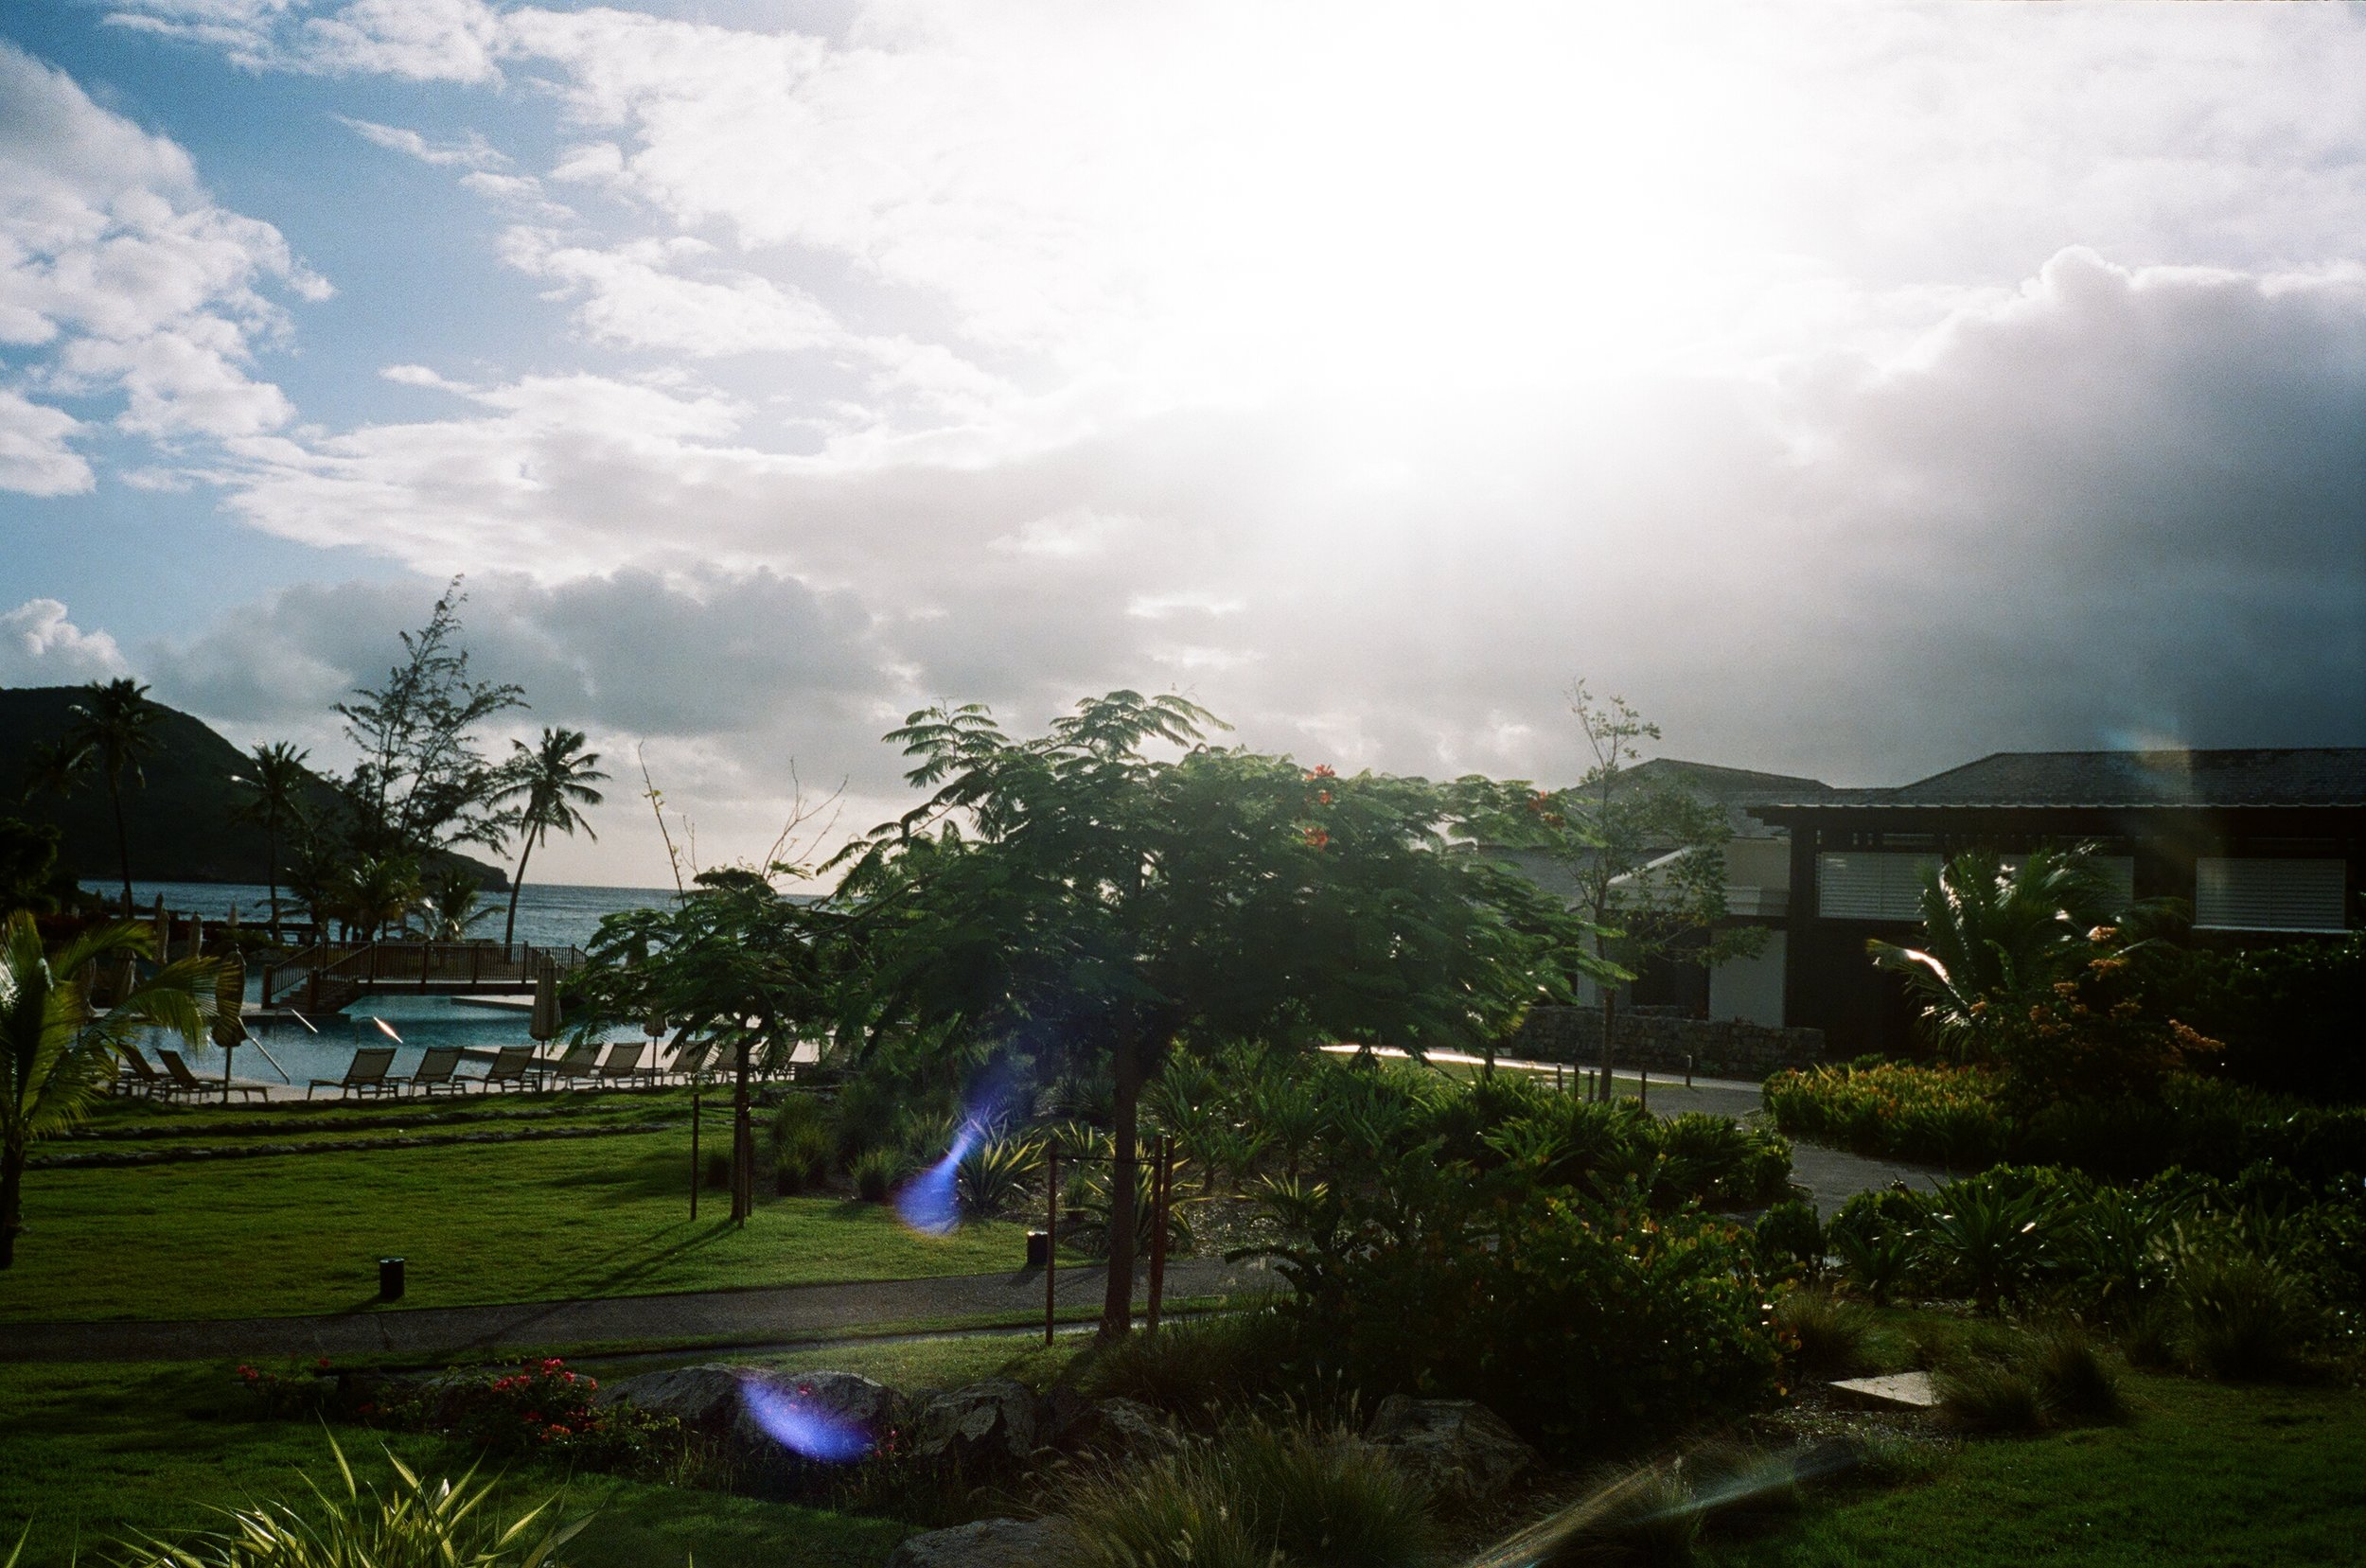 Postcards from St. Kitts -